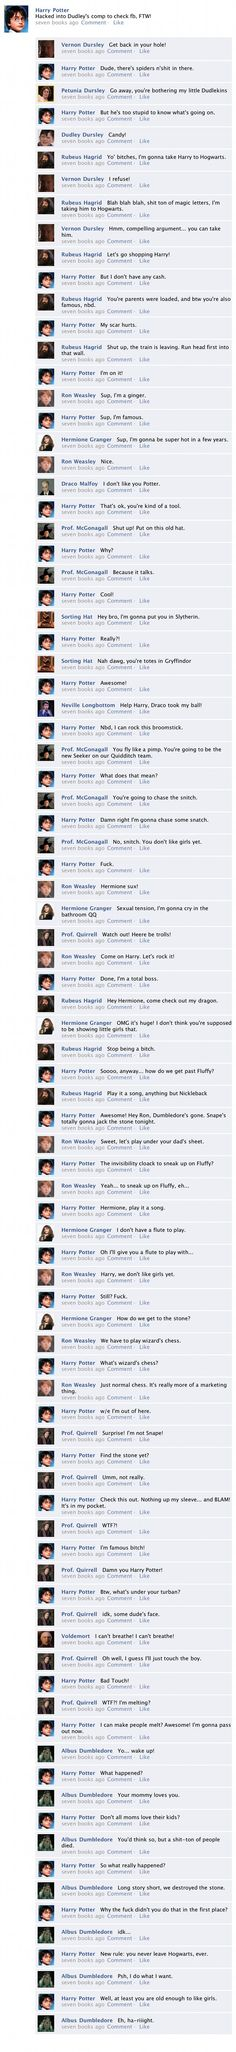 first harry potter summed up in one fb feed - this is freaking hilarious.